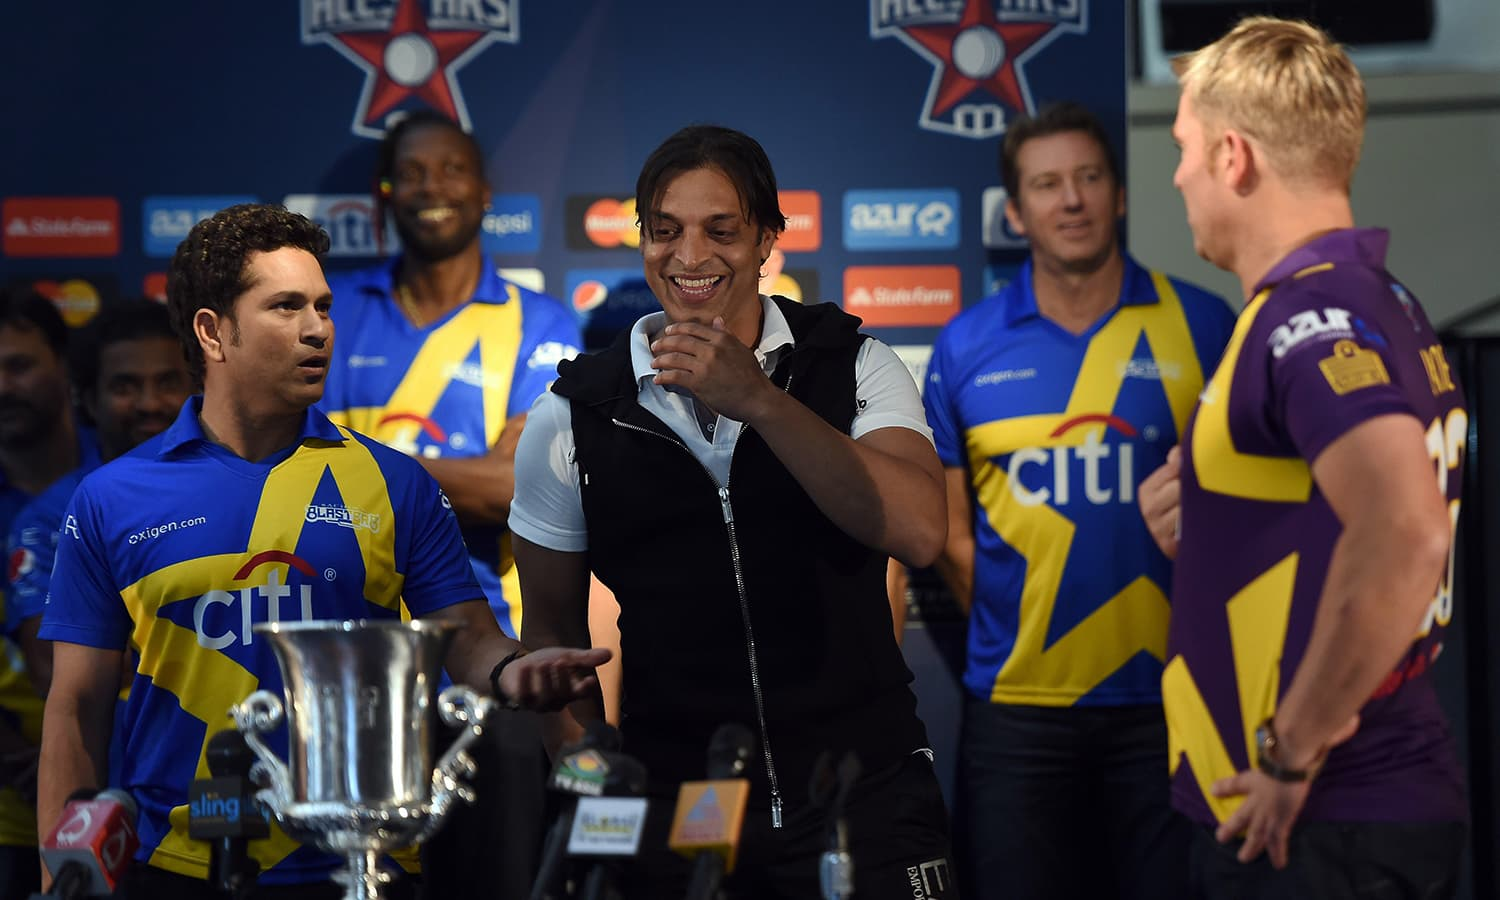 """Australia's Shane Warne (R) and Indian's Sachin Tendulkar (L) toss for Pakistan's Shoaib Akhtar during a press conference in New York on November 5, 2015. Tendulkar and Warne will lead a lineup of renowned cricket players from around the world in the inaugural """"Cricket All-Stars,"""" a three-game series to be played in Major League Baseball stadiums in New York , Houston and Los Angeles, to promote cricket the US. AFP PHOTO/JEWEL SAMAD"""